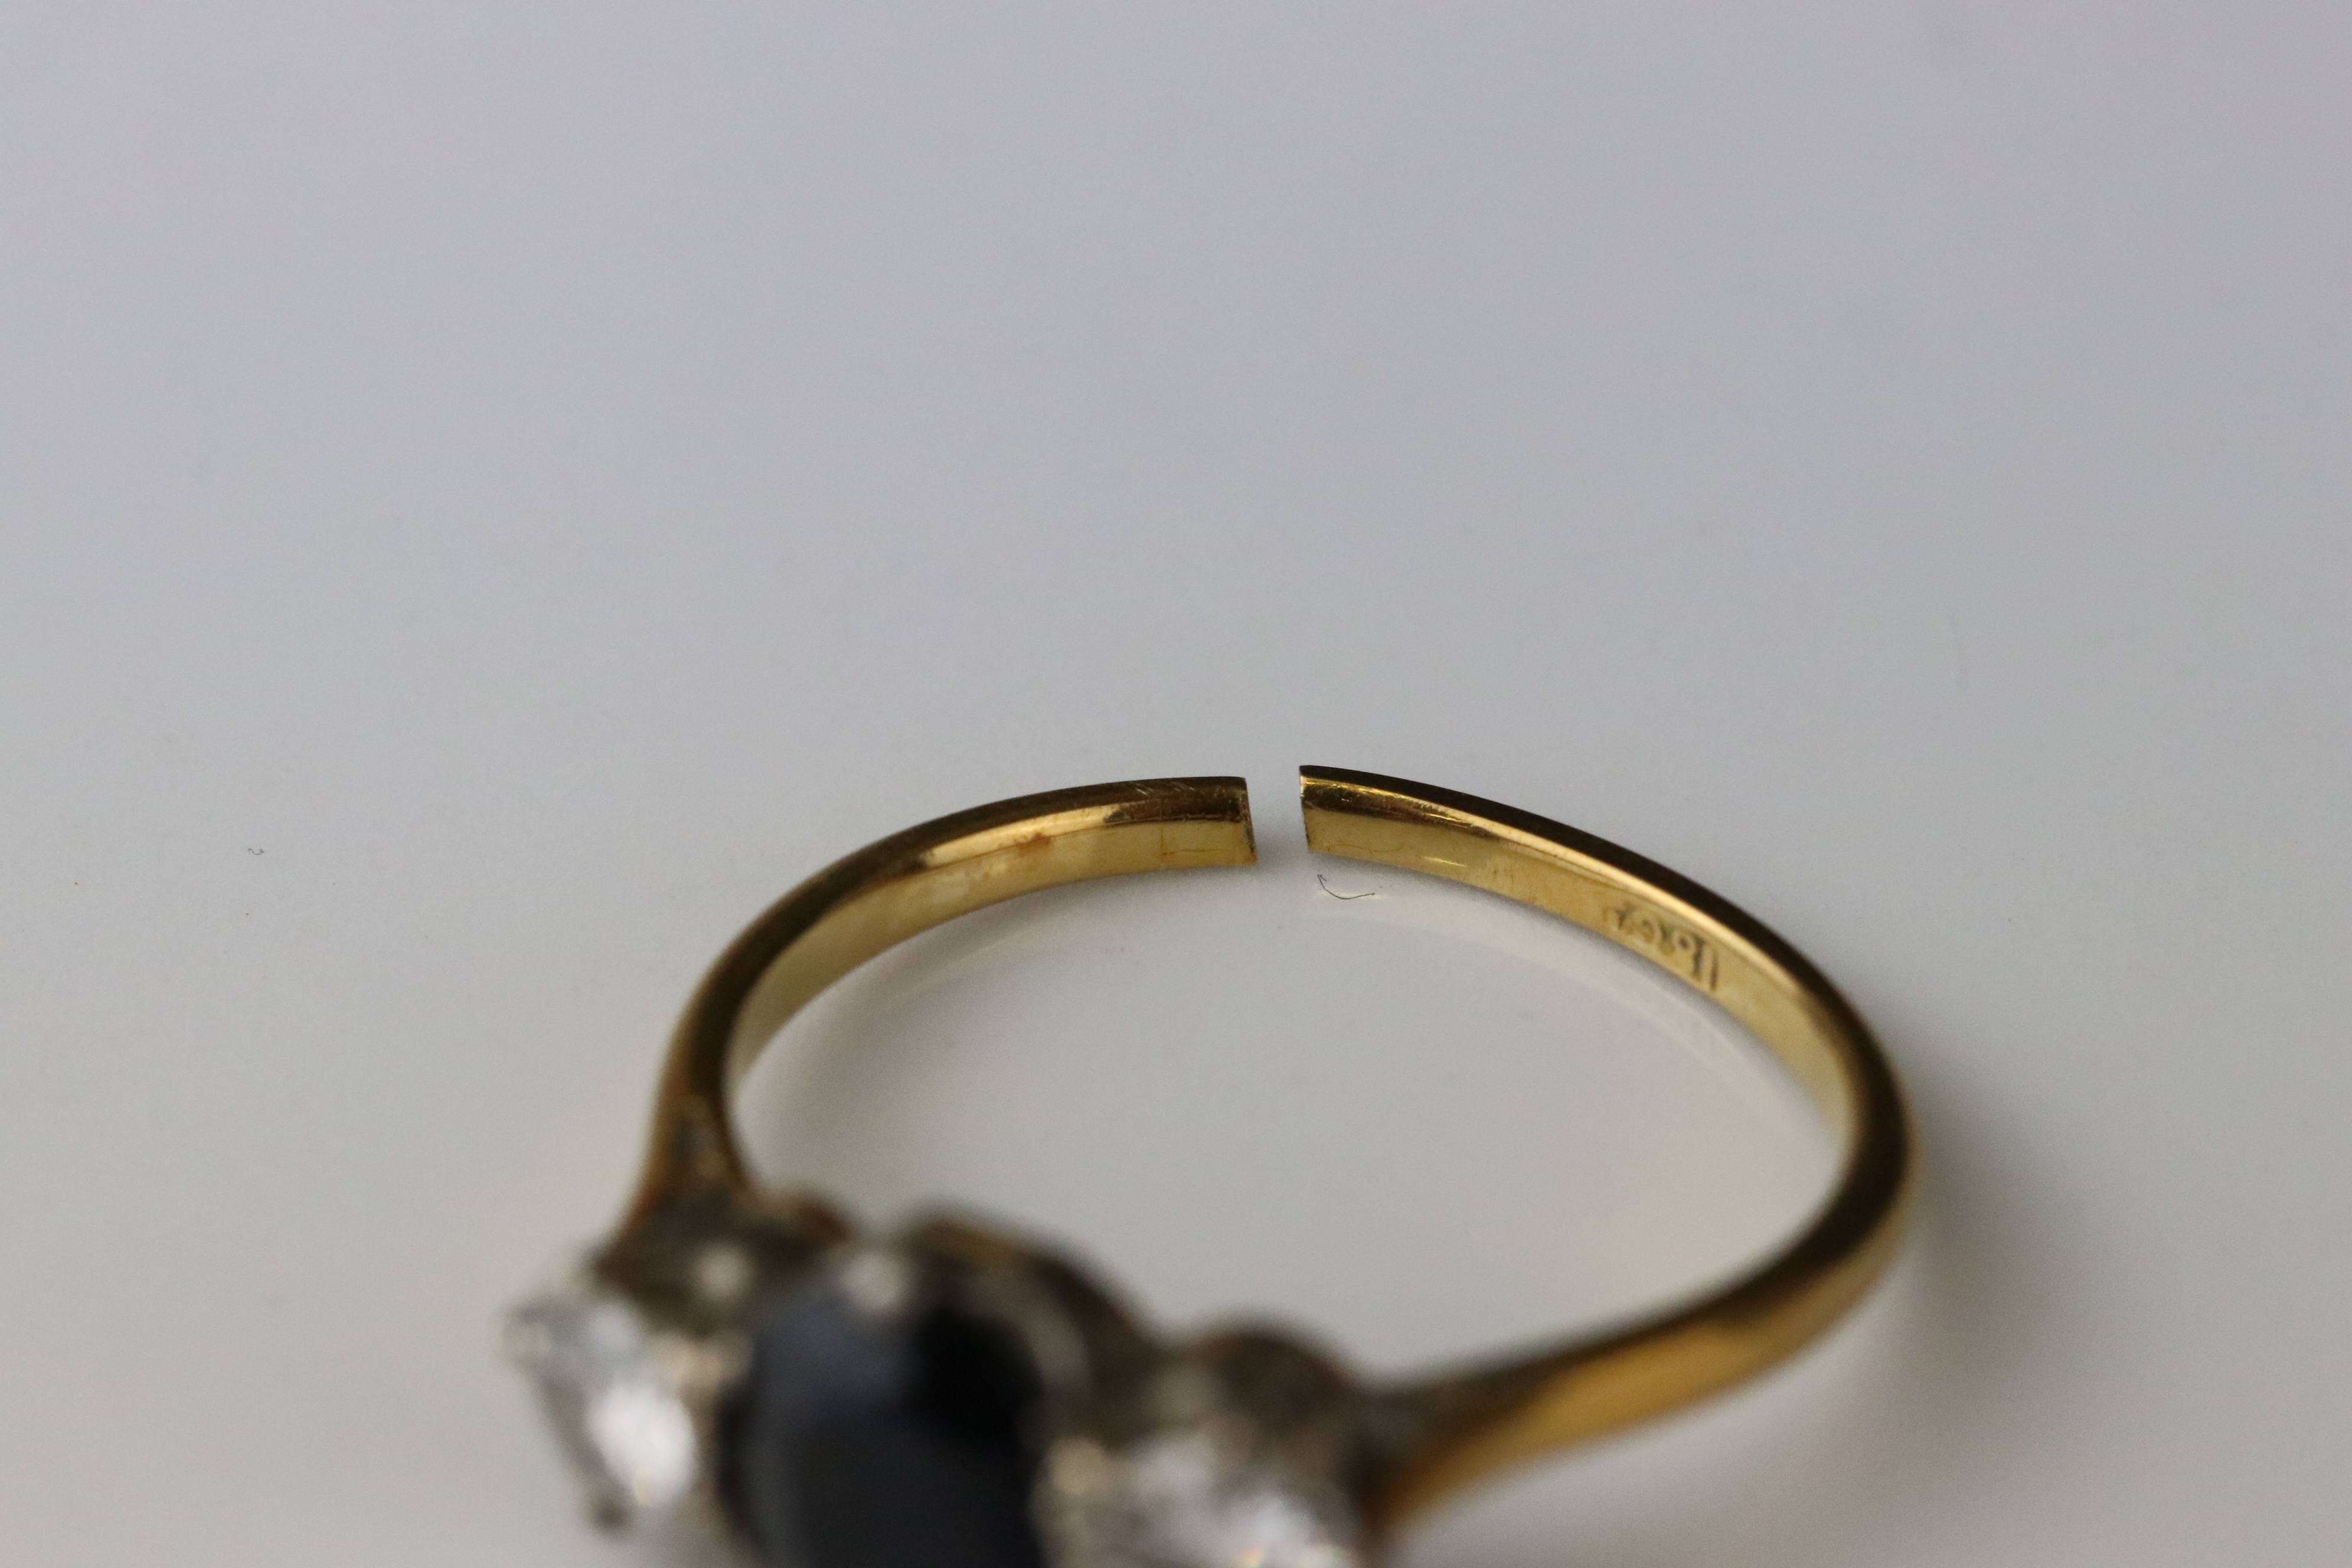 Sapphire and diamond three stone 18ct yellow gold platinum set ring, the oval mixed cut blue-black - Image 2 of 5